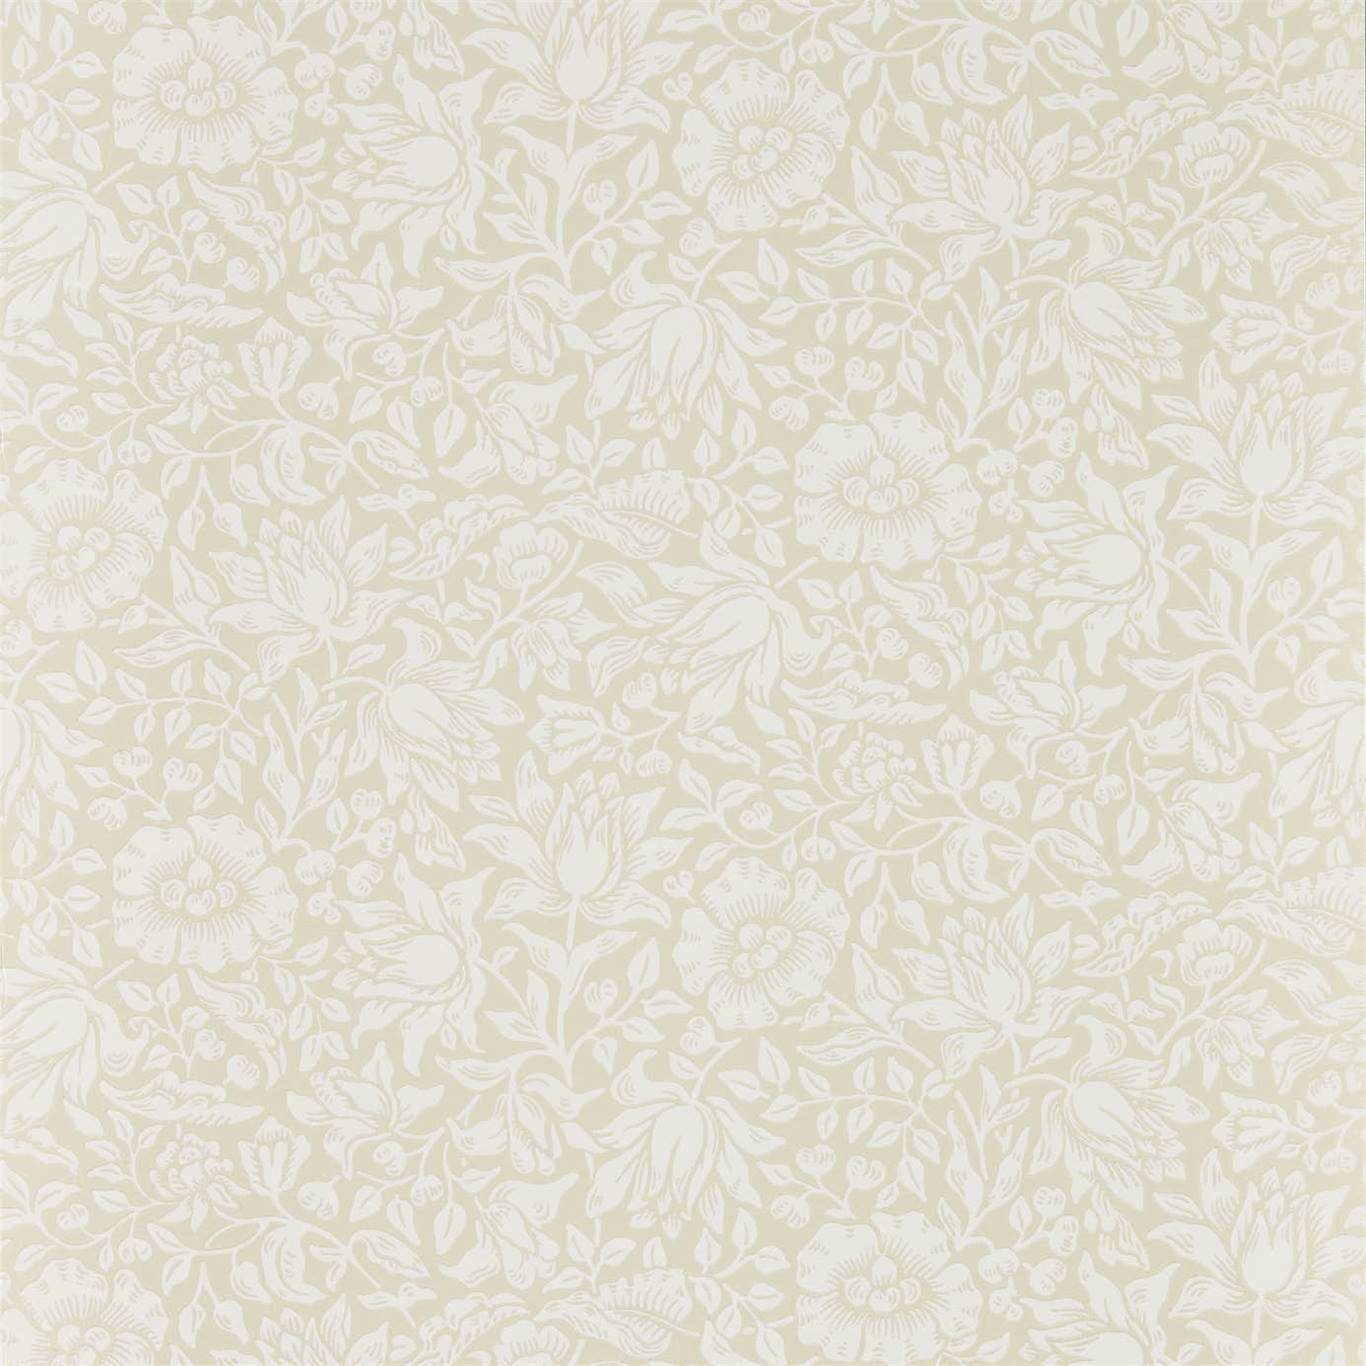 Image of Morris & Co Mallow Cream Ivory Wallpaper 216676